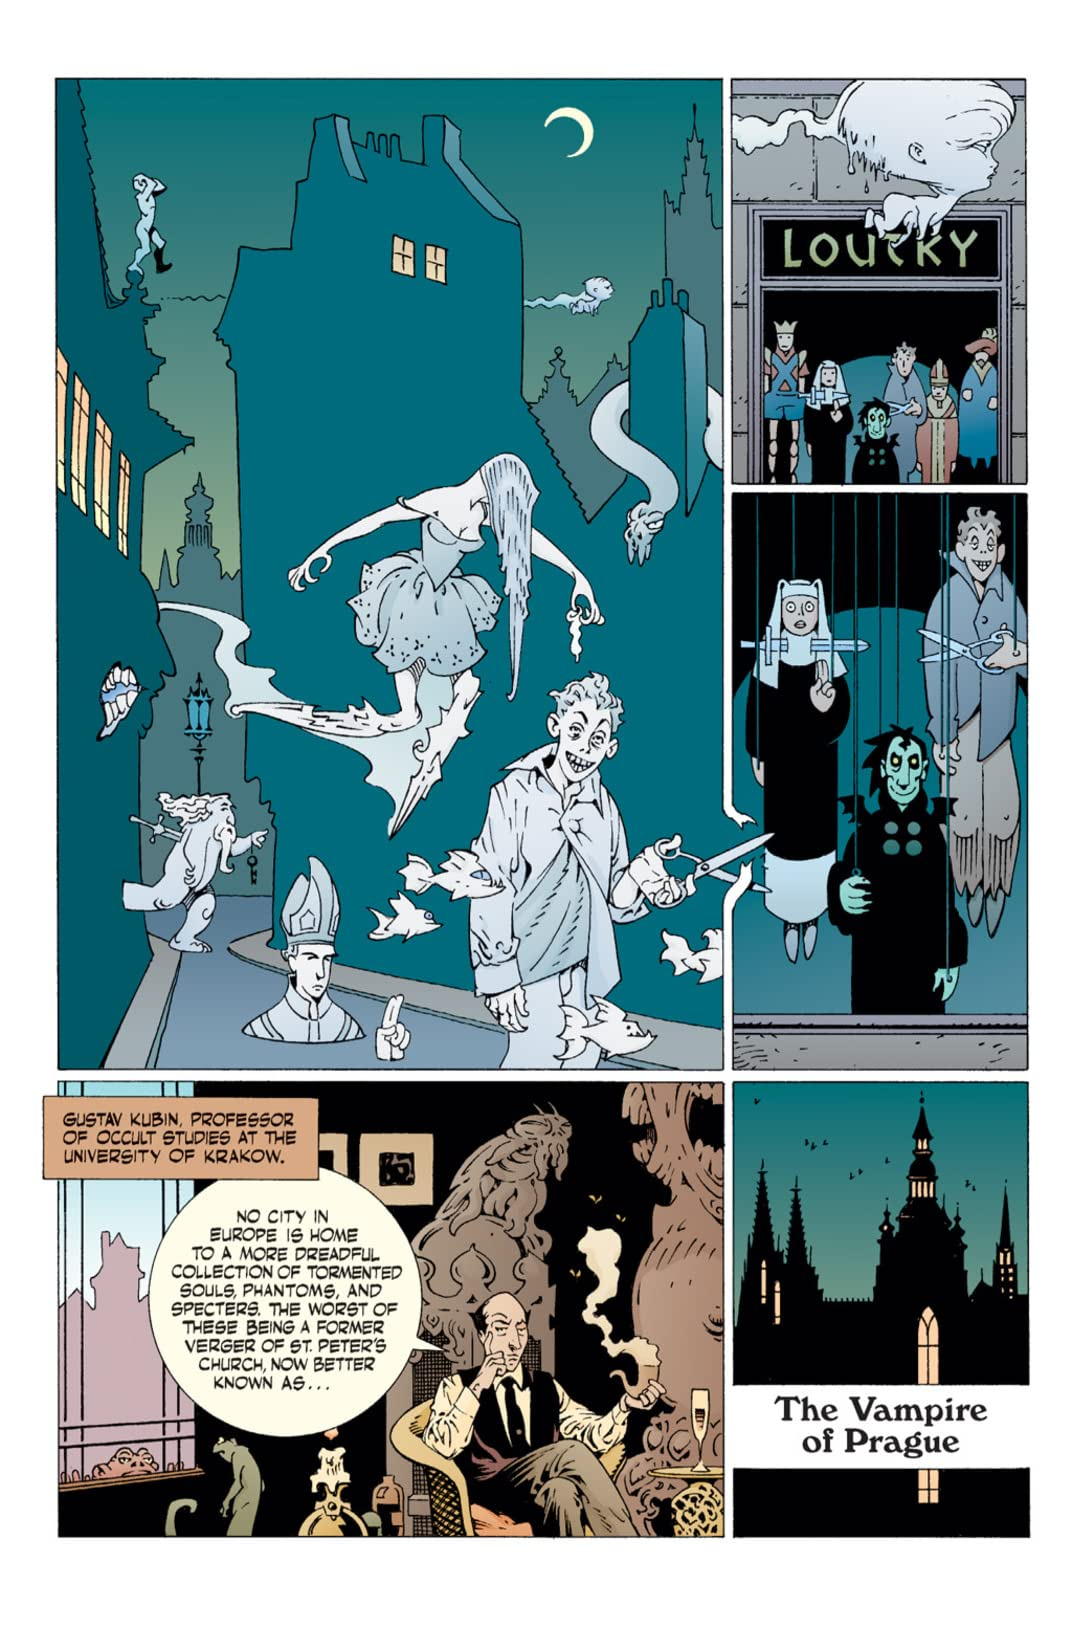 Hellboy: The Vampire of Prague and Dr. Carp's Experiment #6